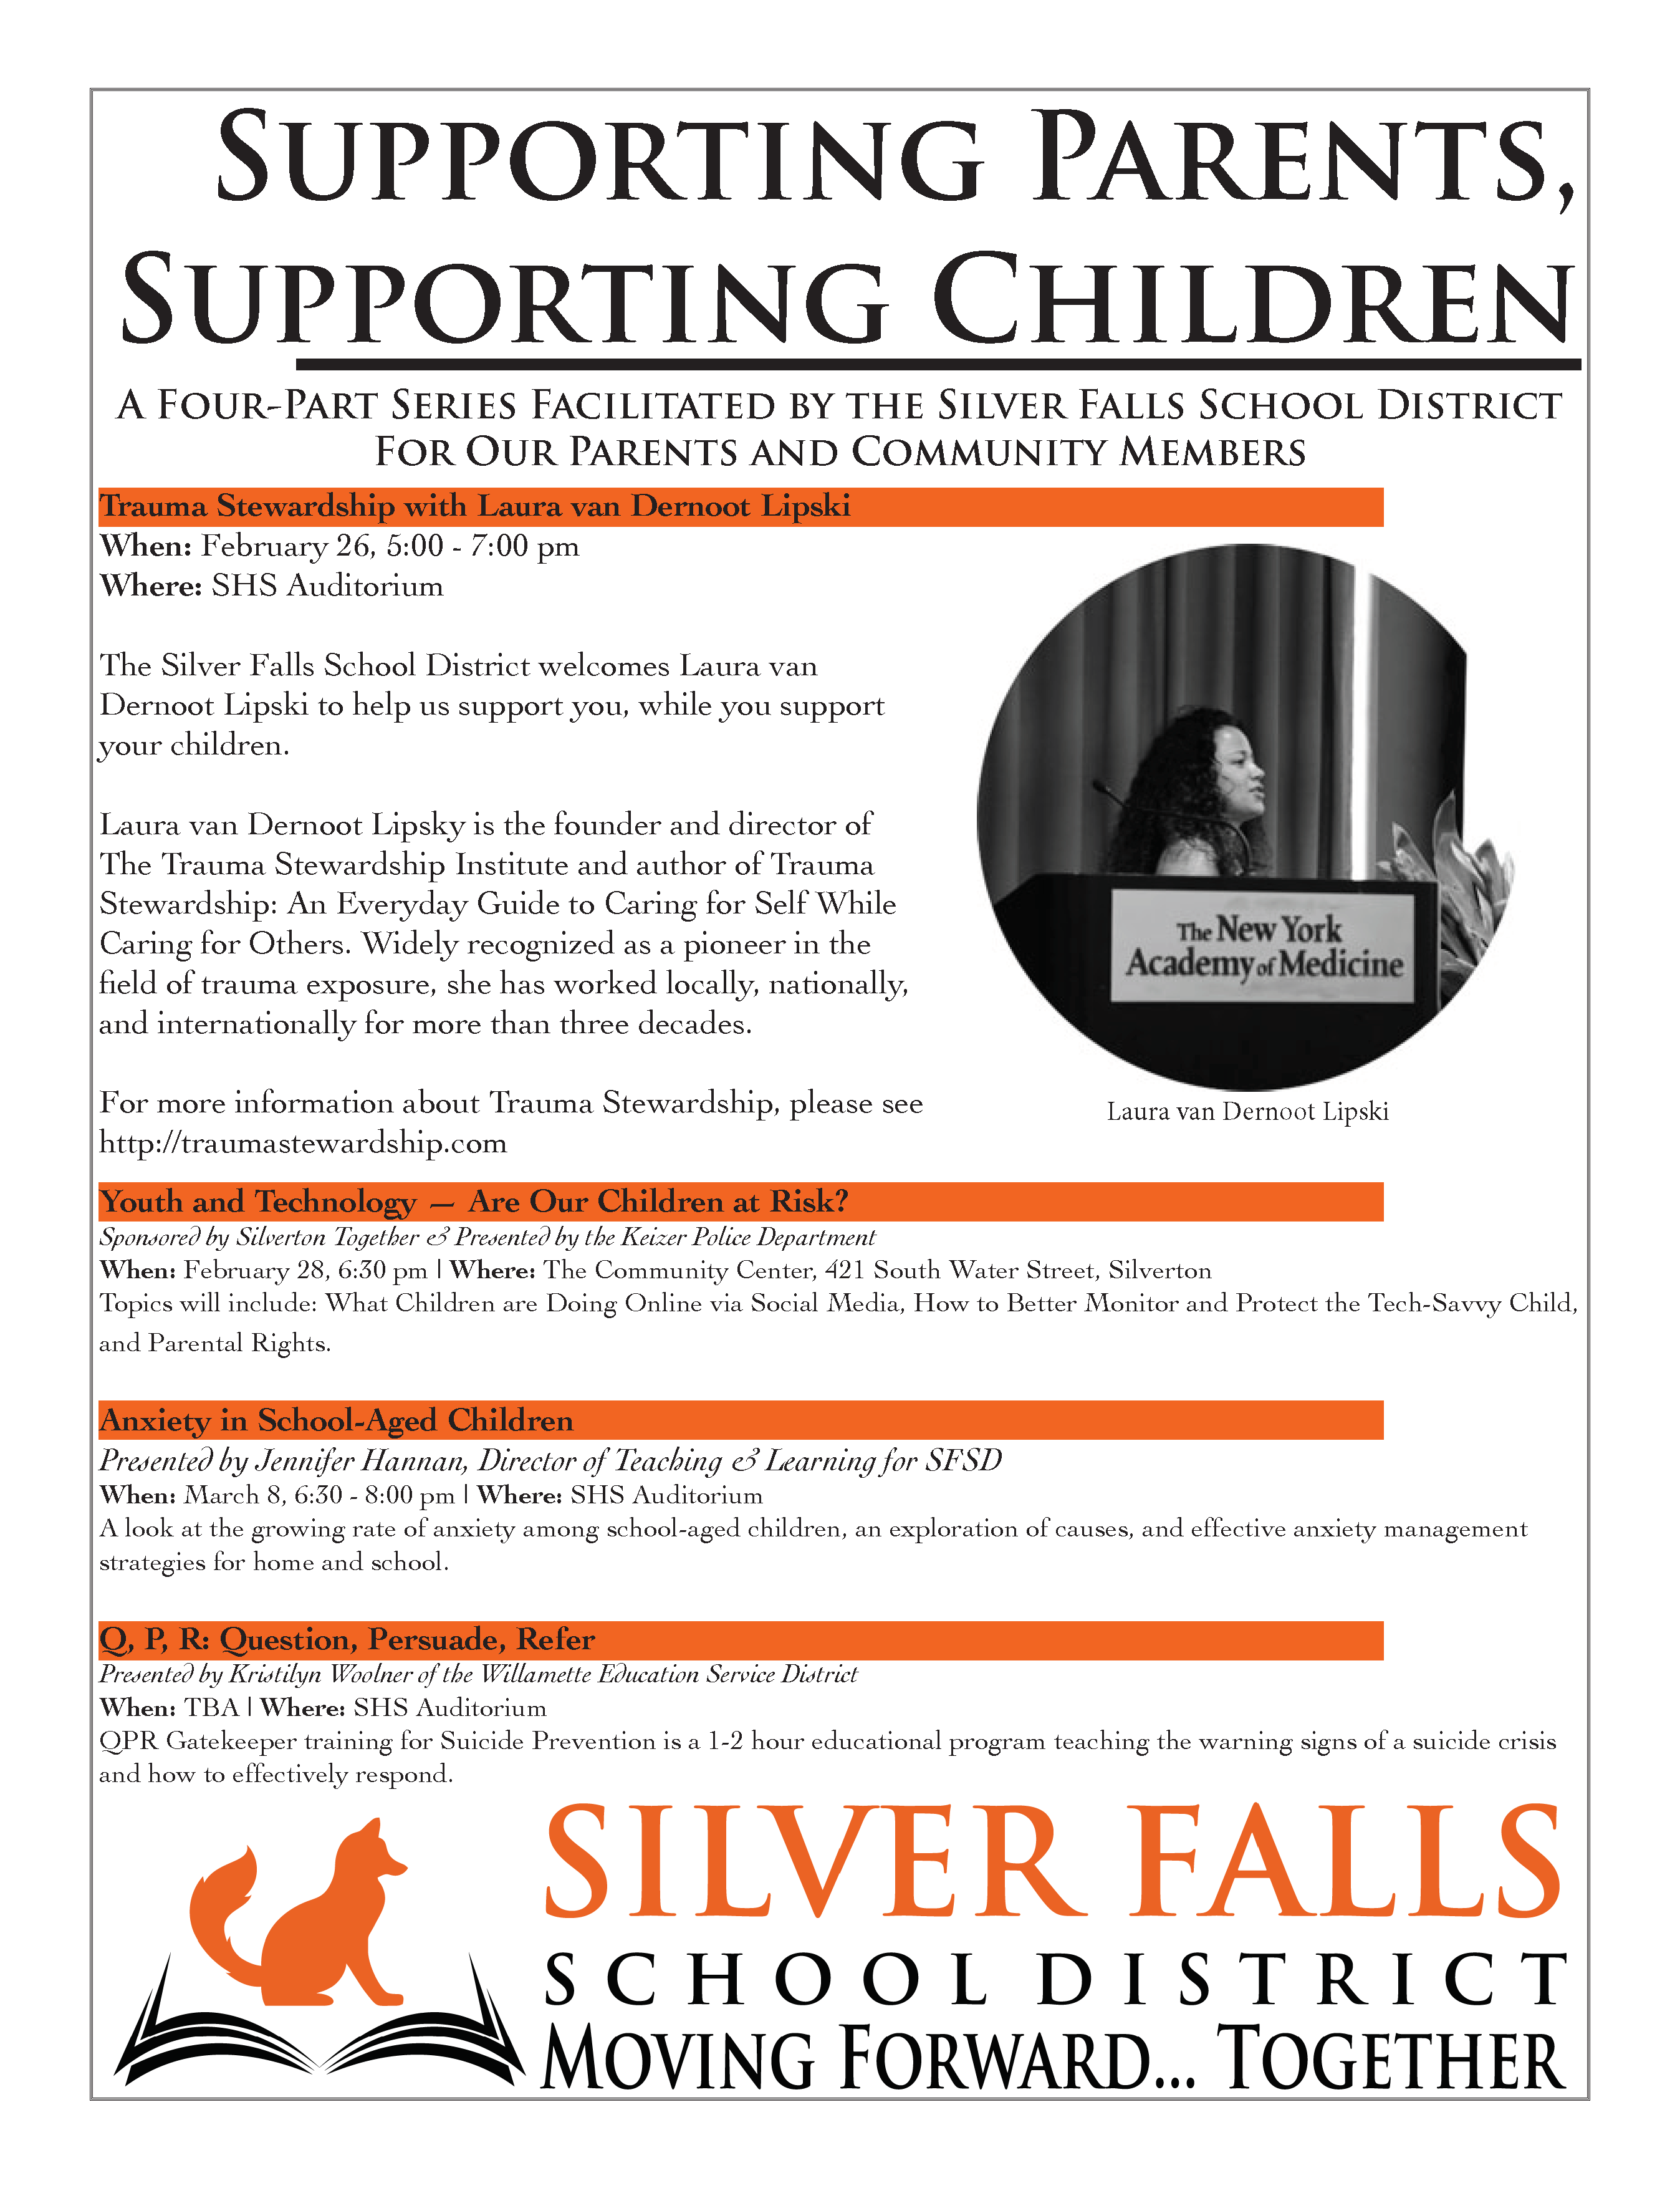 Parent Support Flier. See download link above.